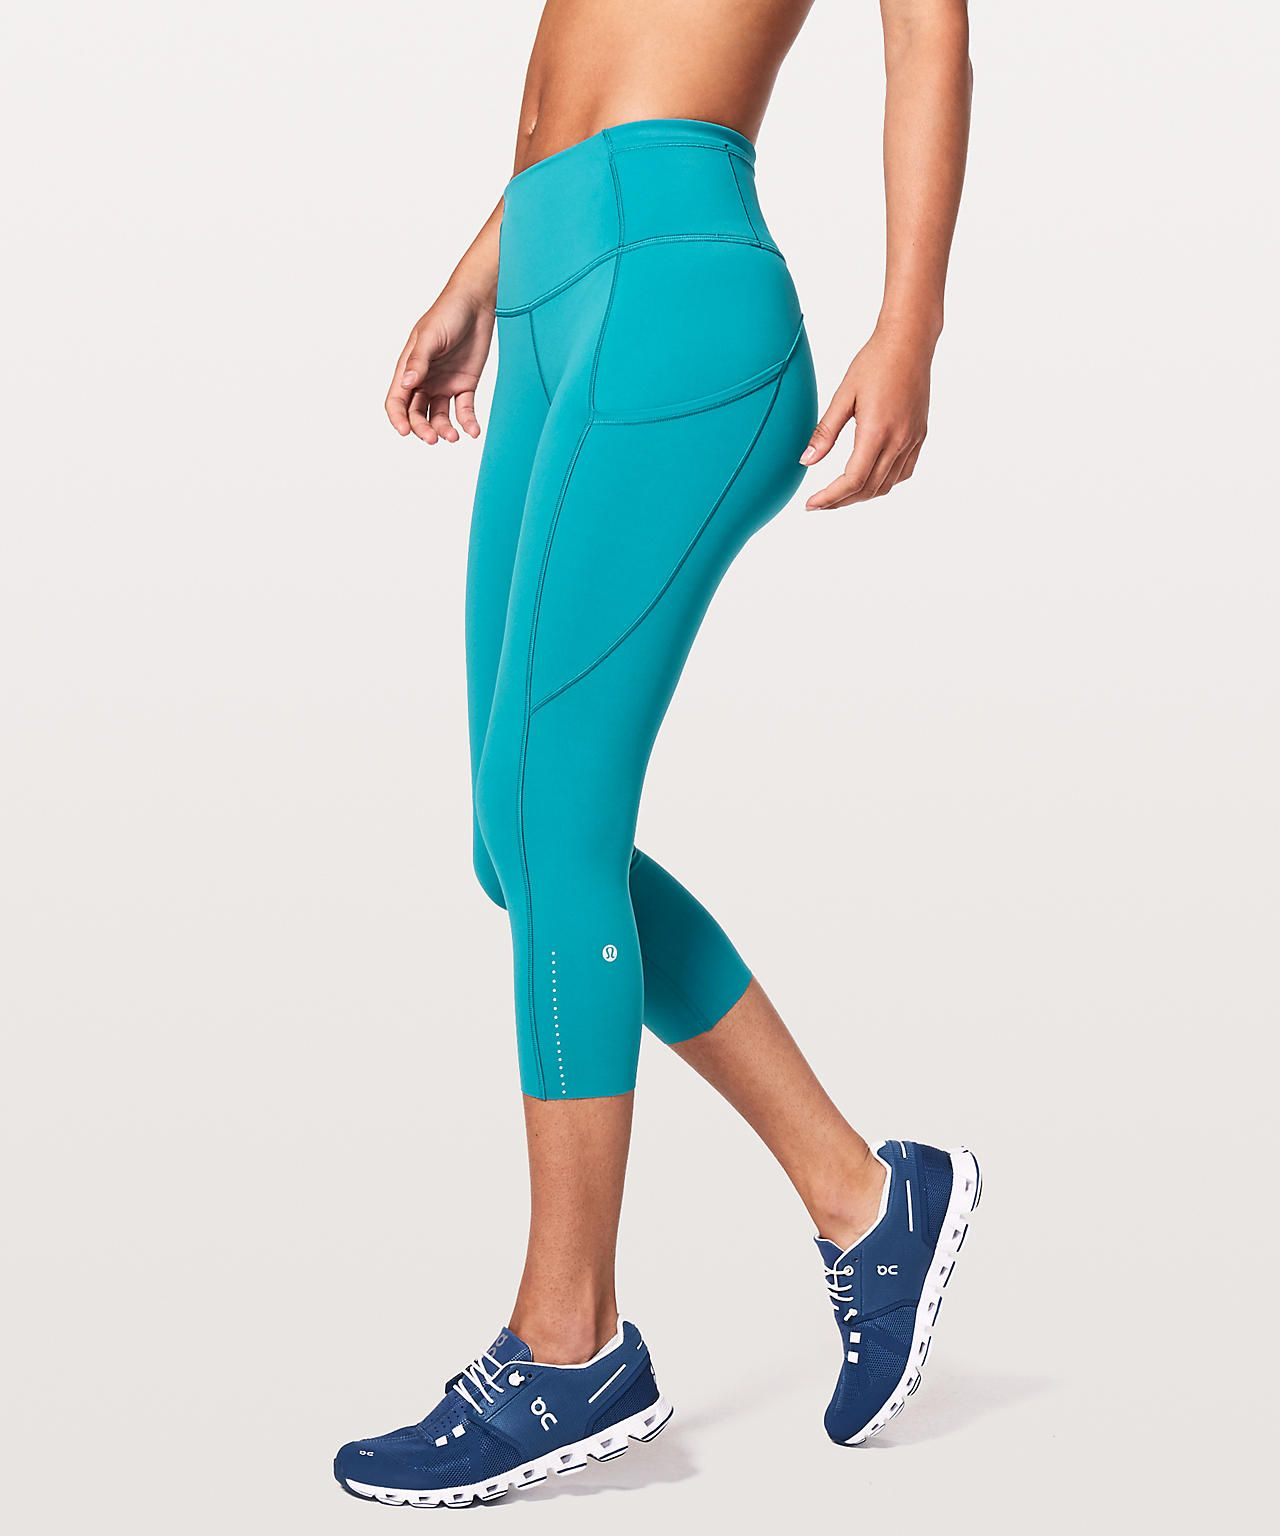 73e4ac09c5 Fast and Free crop II *Nulux Teal blue | Lululemon ❤ | Free crop ...